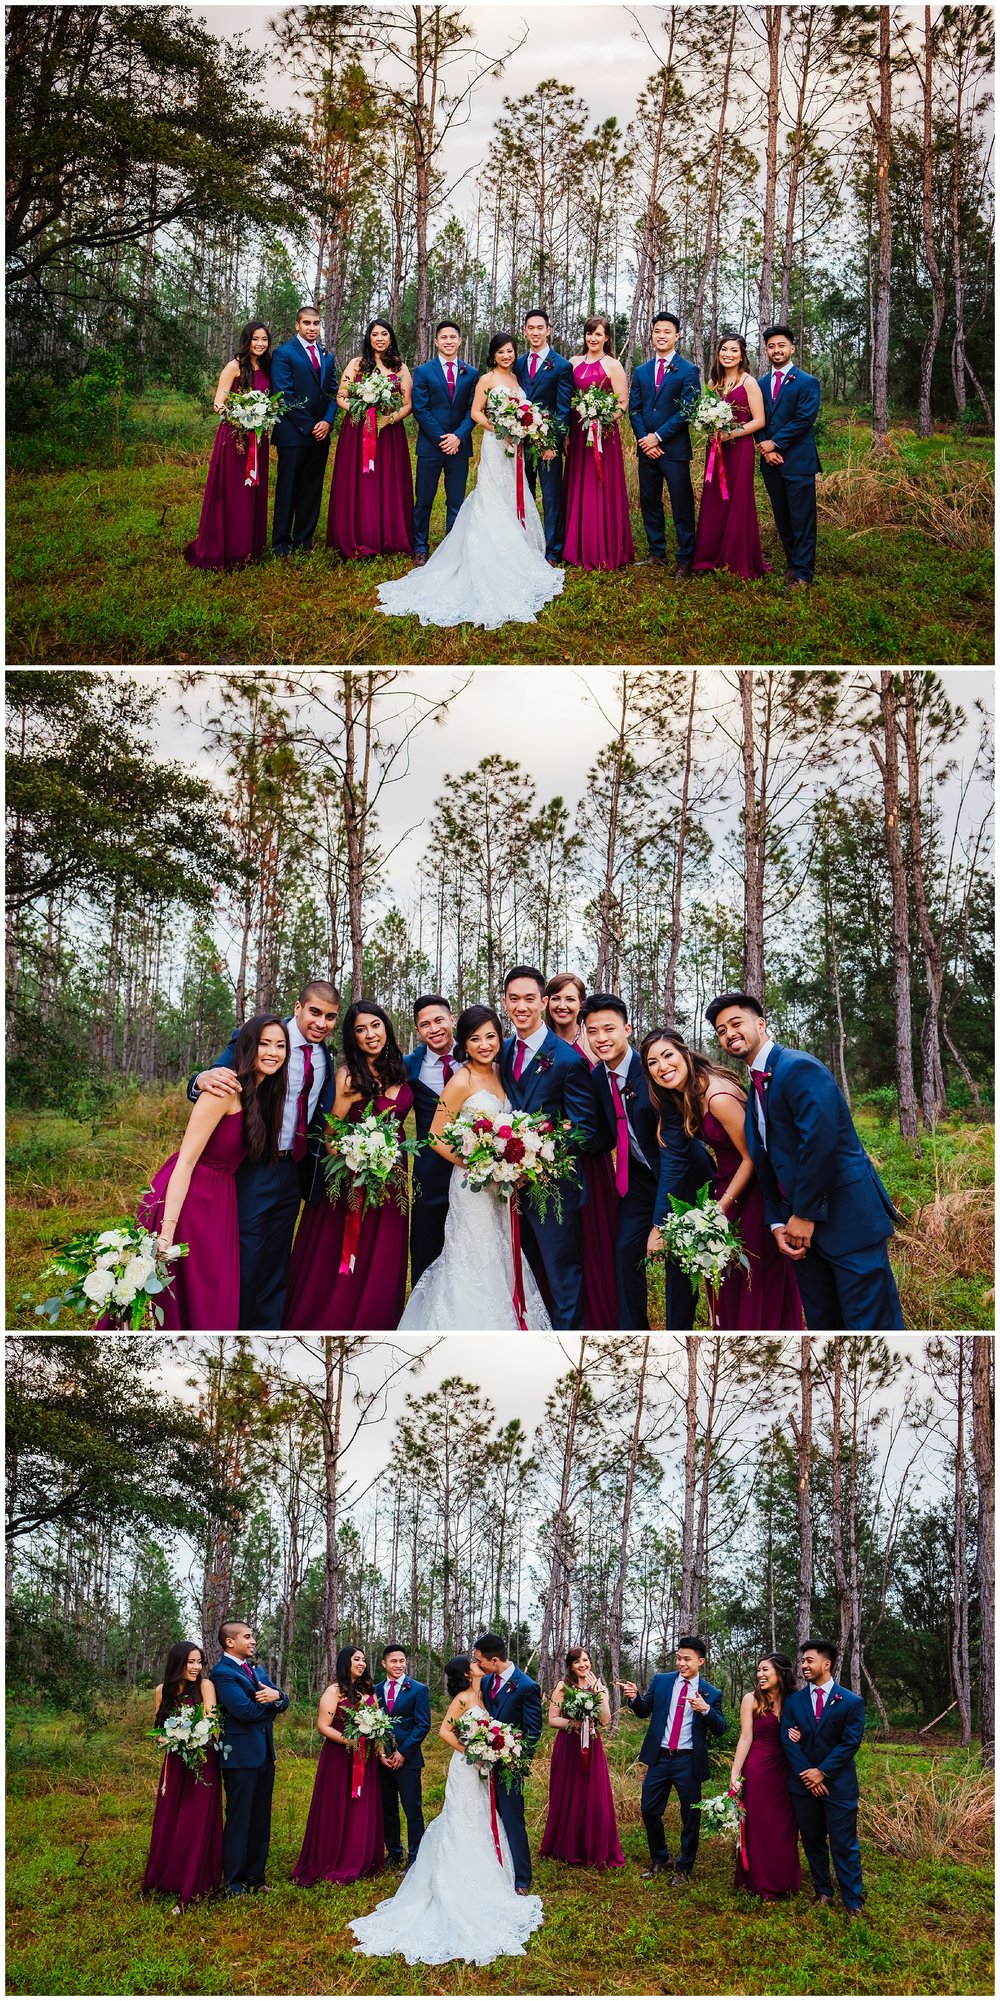 tampa-wedding-photographer-philipino-colorful-woods-ballroom-church-mass-confetti-fuscia_0045.jpg